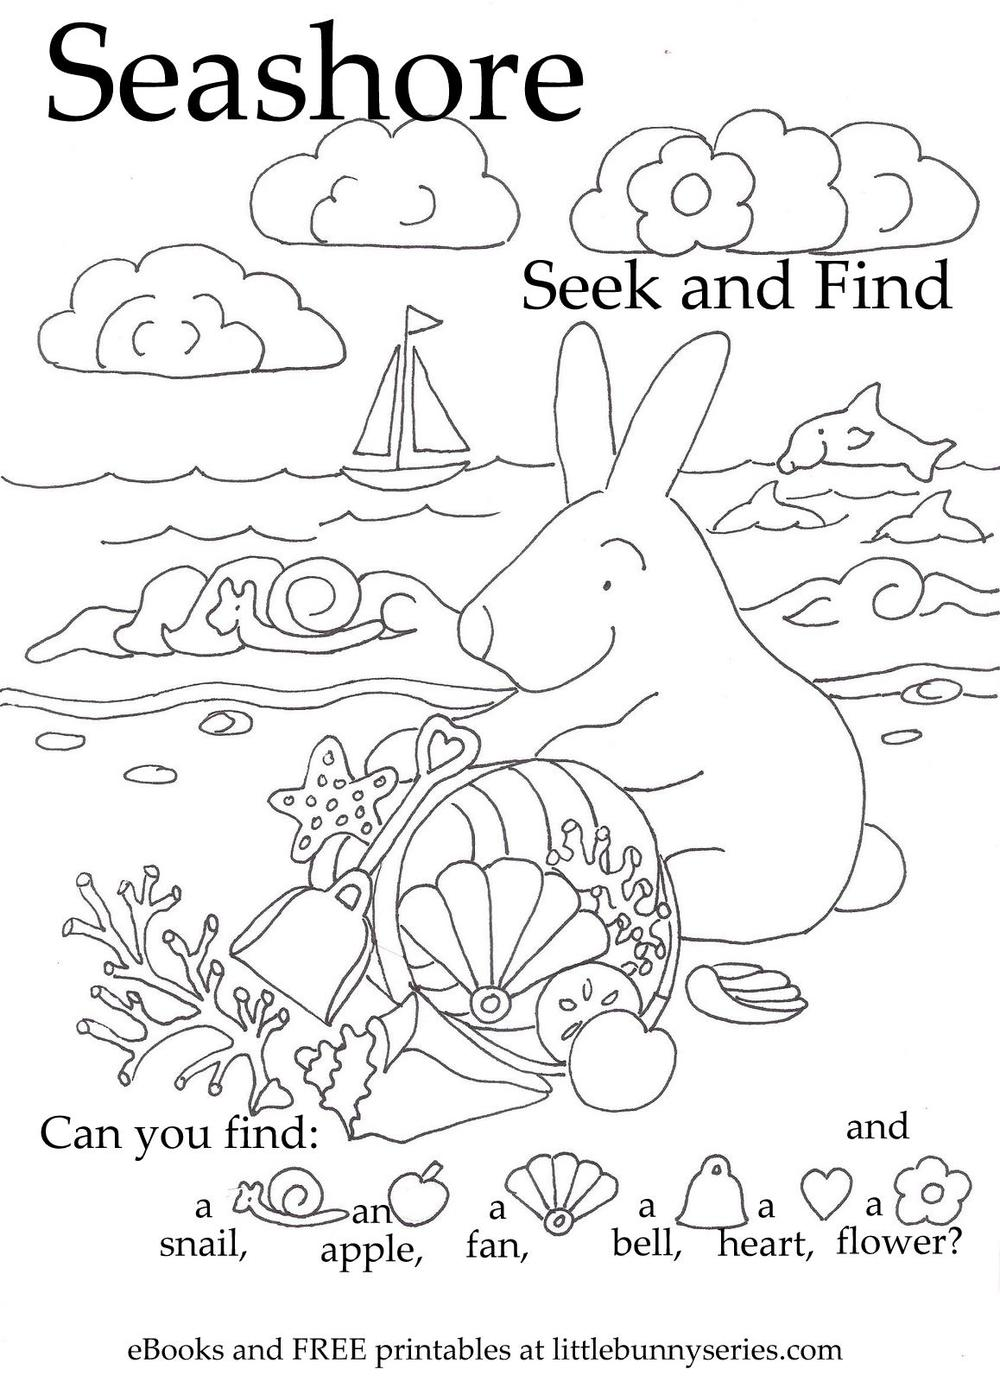 Seashore Seek and Find PDF